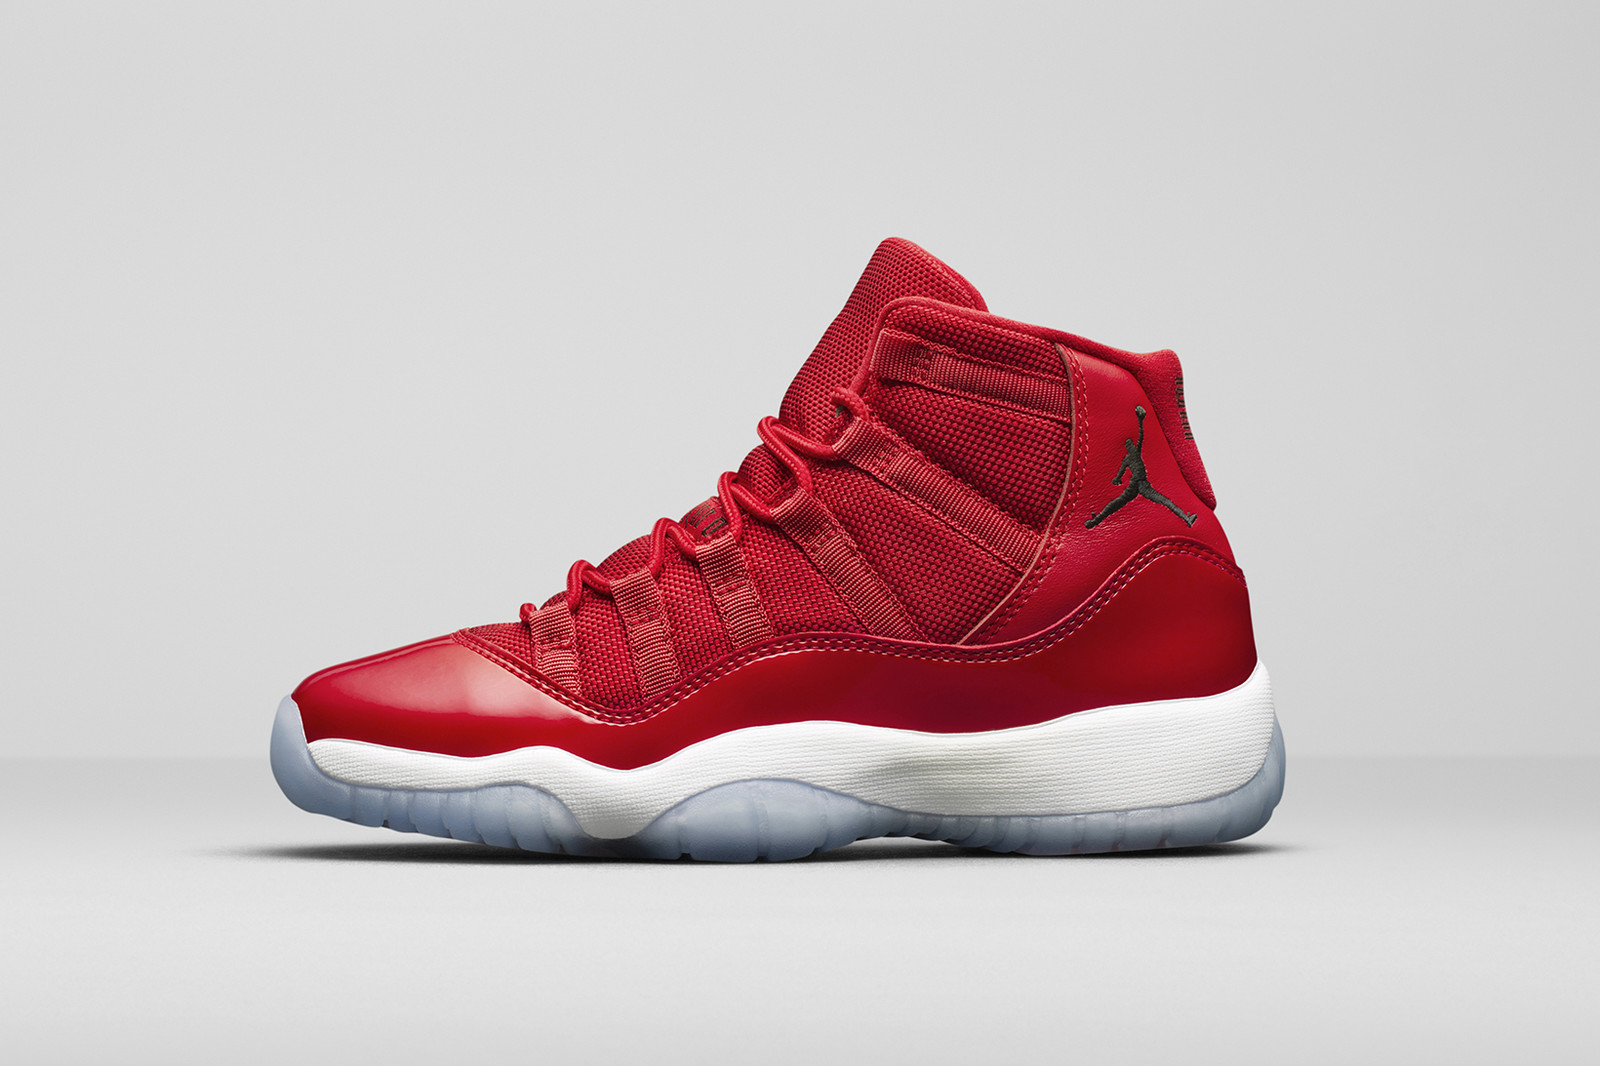 Jordan Brand 2017 Holiday Collection Air Jordan 11 32 Win Like Mike black red navy carolina blue unc university of north carolina white chicago bulls michael 23 ii xxxii 1 golden harvest grey trunner